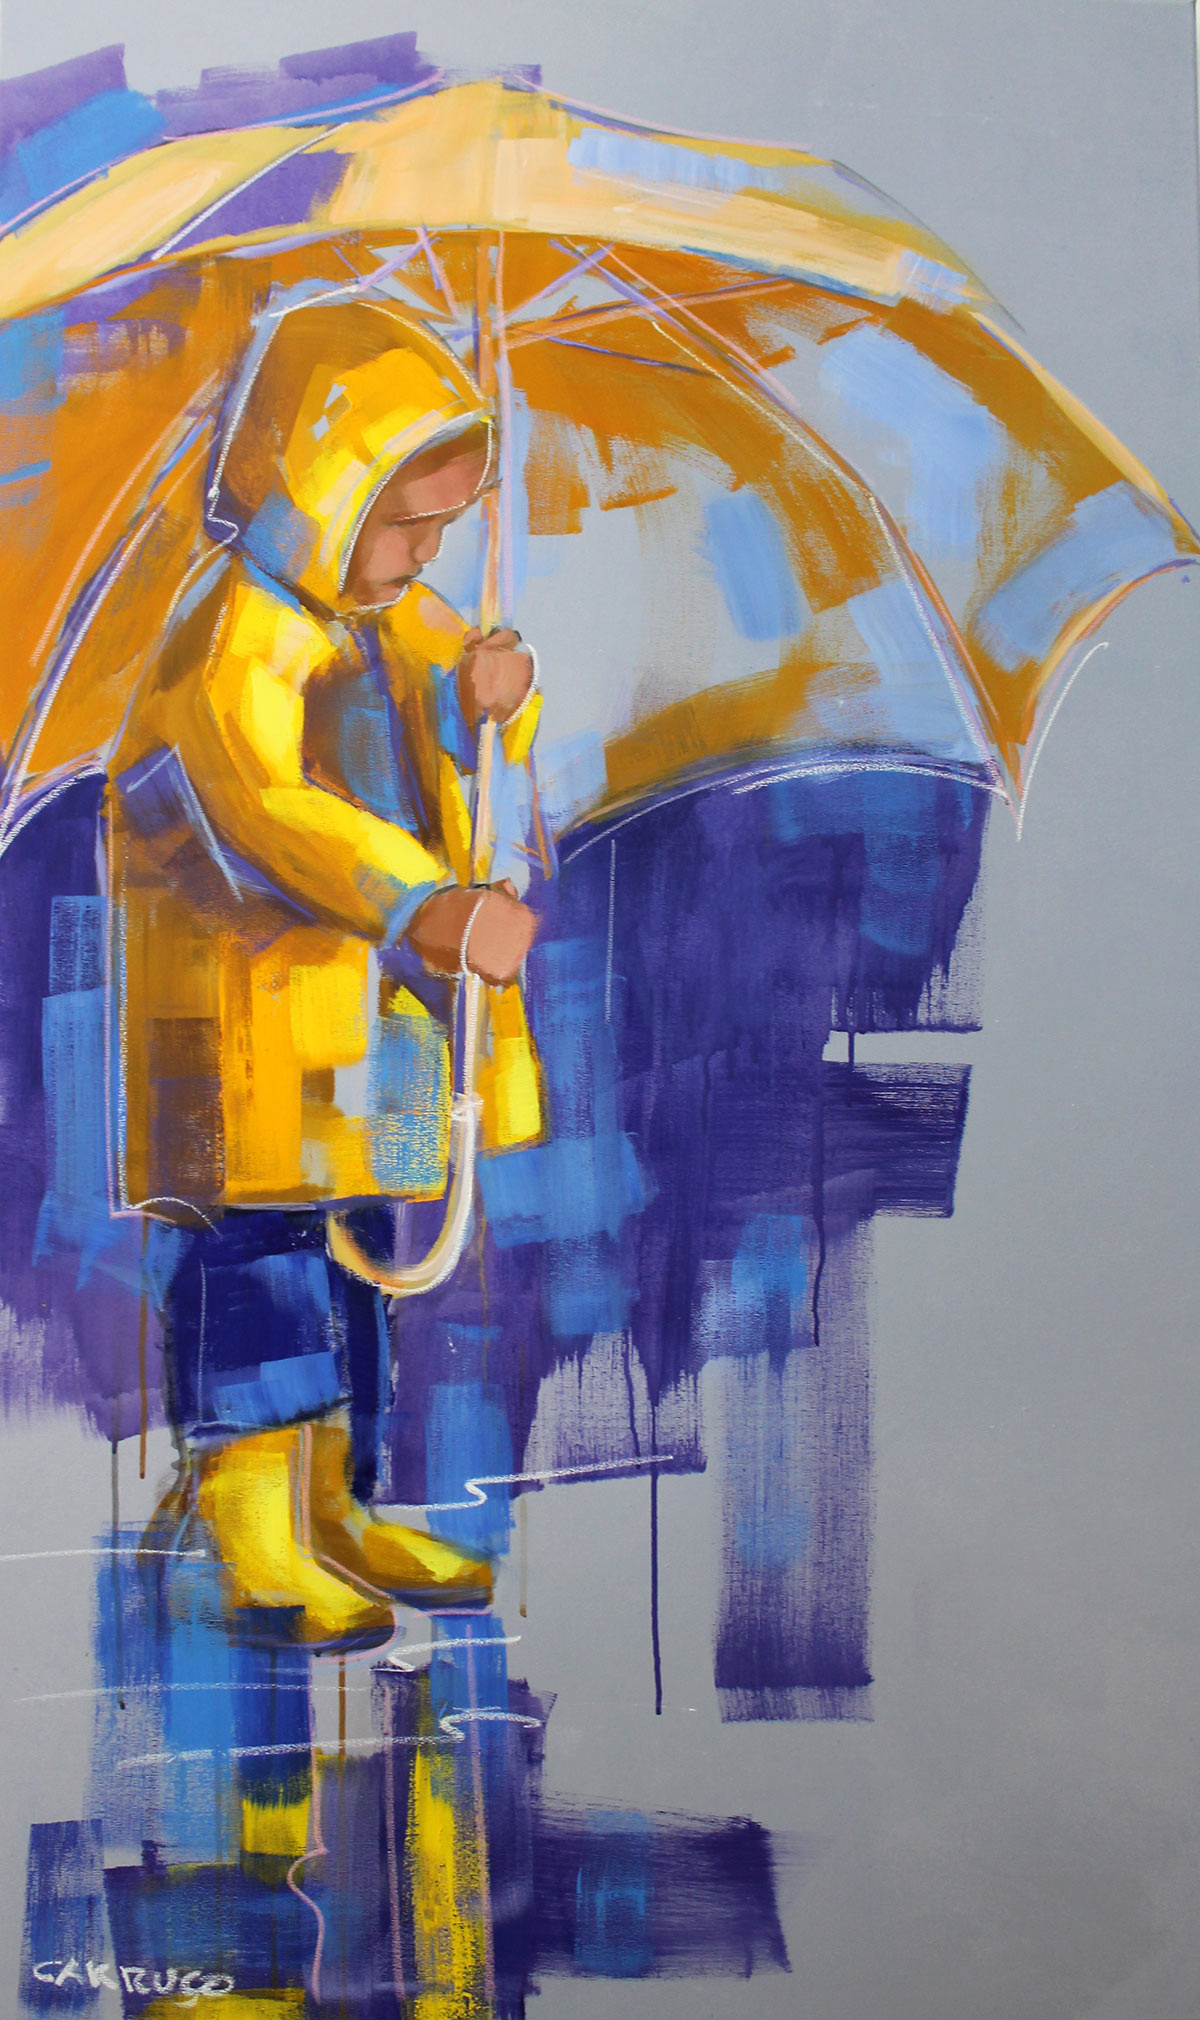 Gallery Painting Plastic Artist Rui Carruco 2019 In-the-company-of-rain